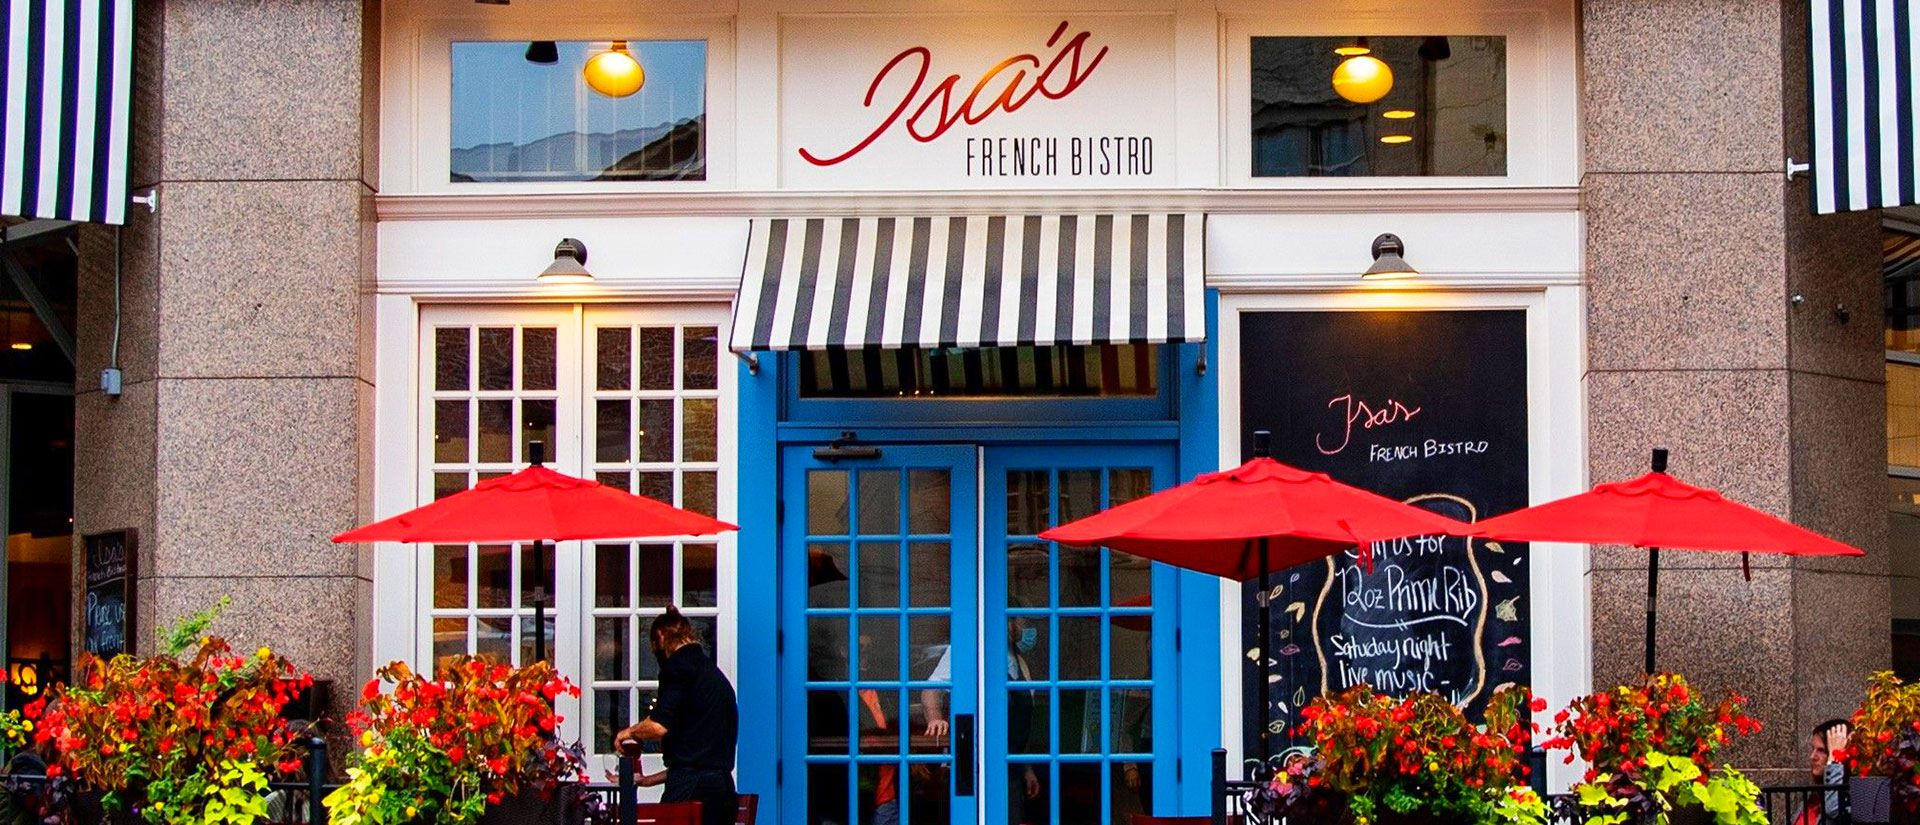 Isa's French Bistro Restaurant, Asheville